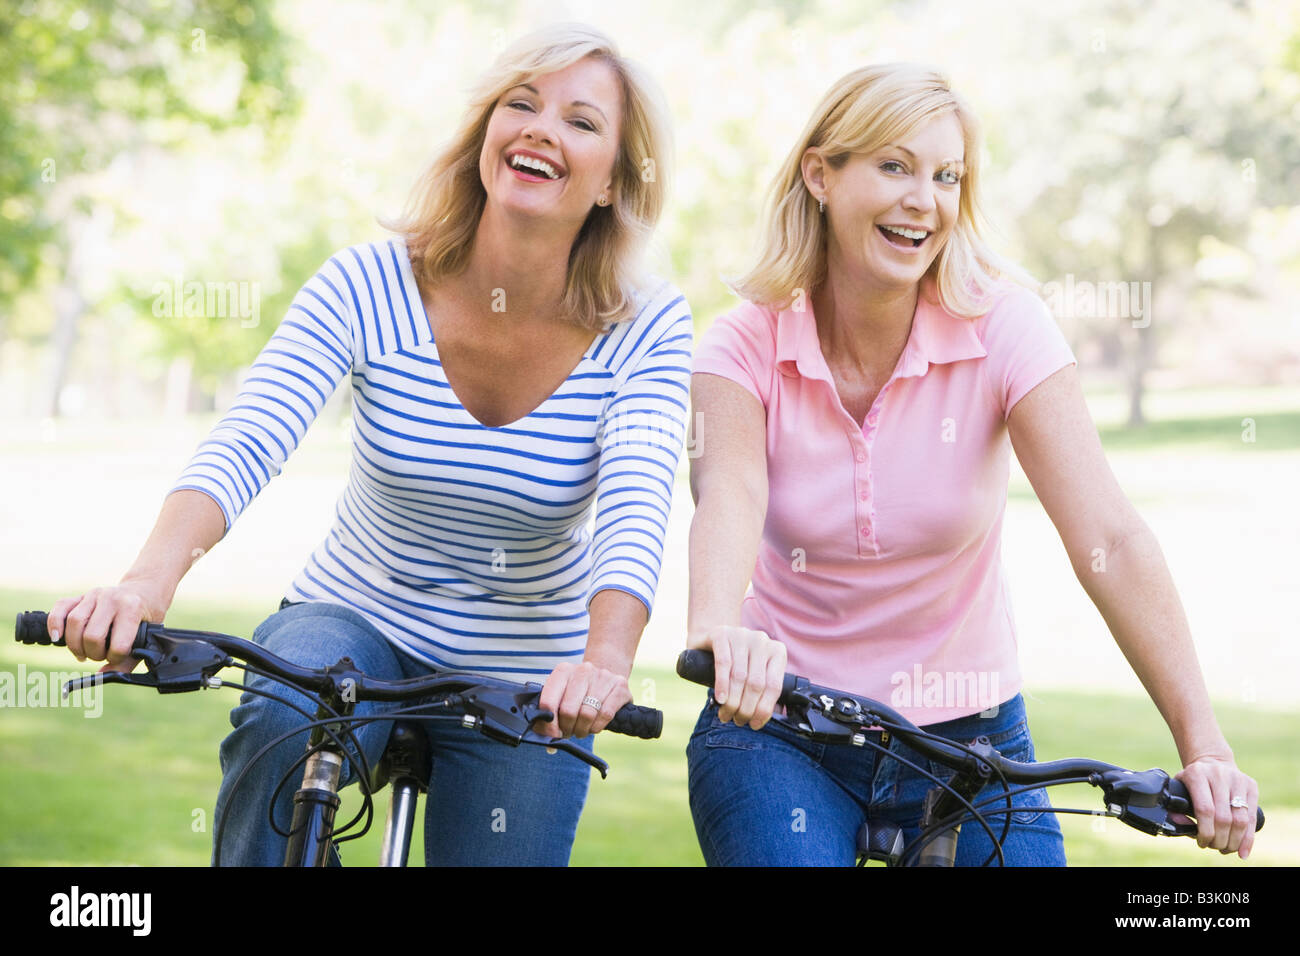 Two friends on bikes outdoors smiling - Stock Image